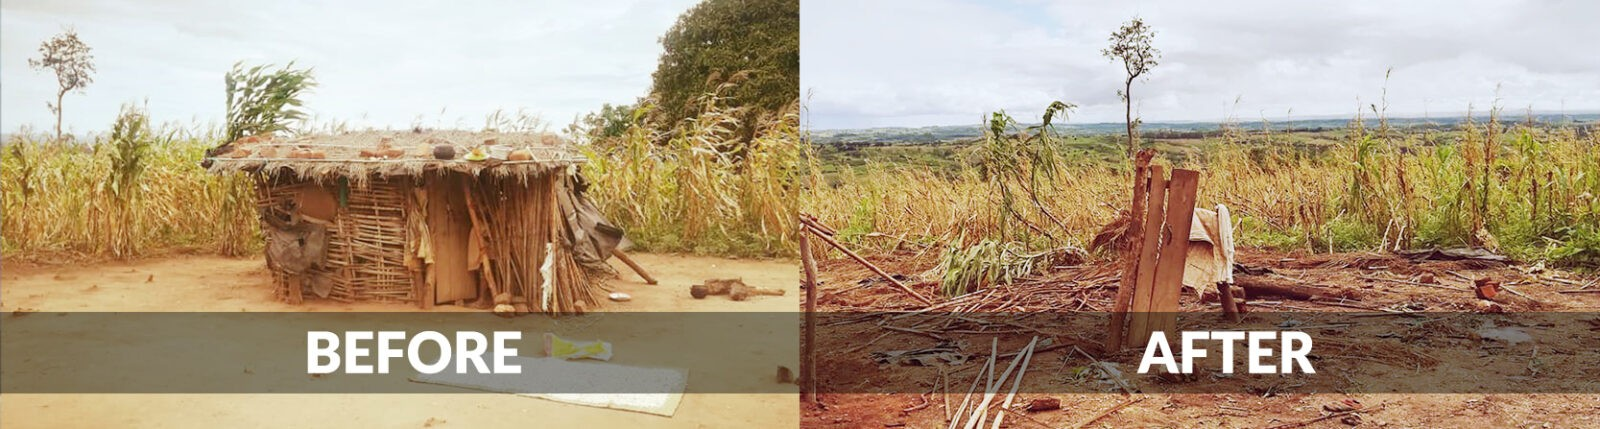 Cyclone Idai Relief Before and After5